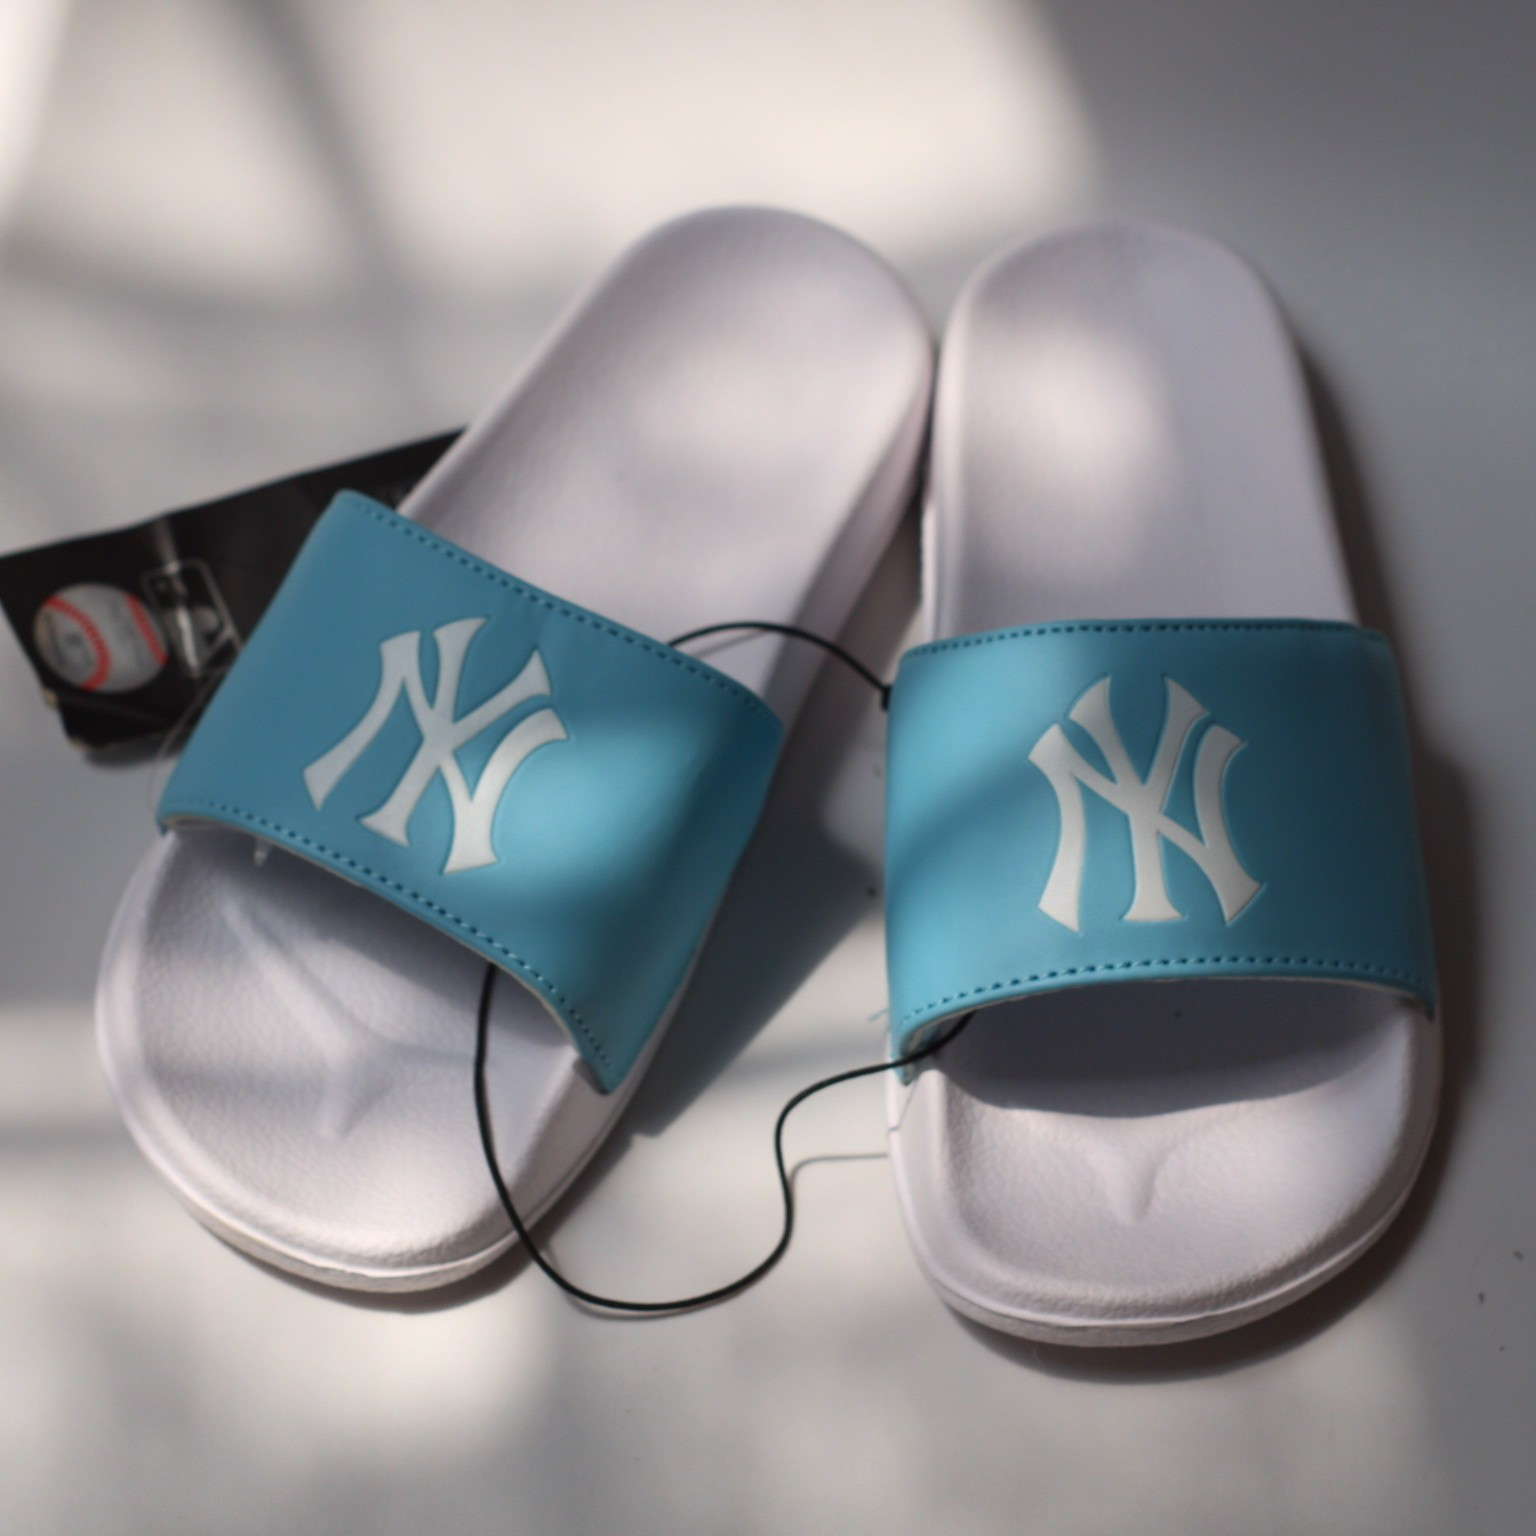 DÉP MLB AUTHENTIC NY LOGO SLIDES - BABY BLUE